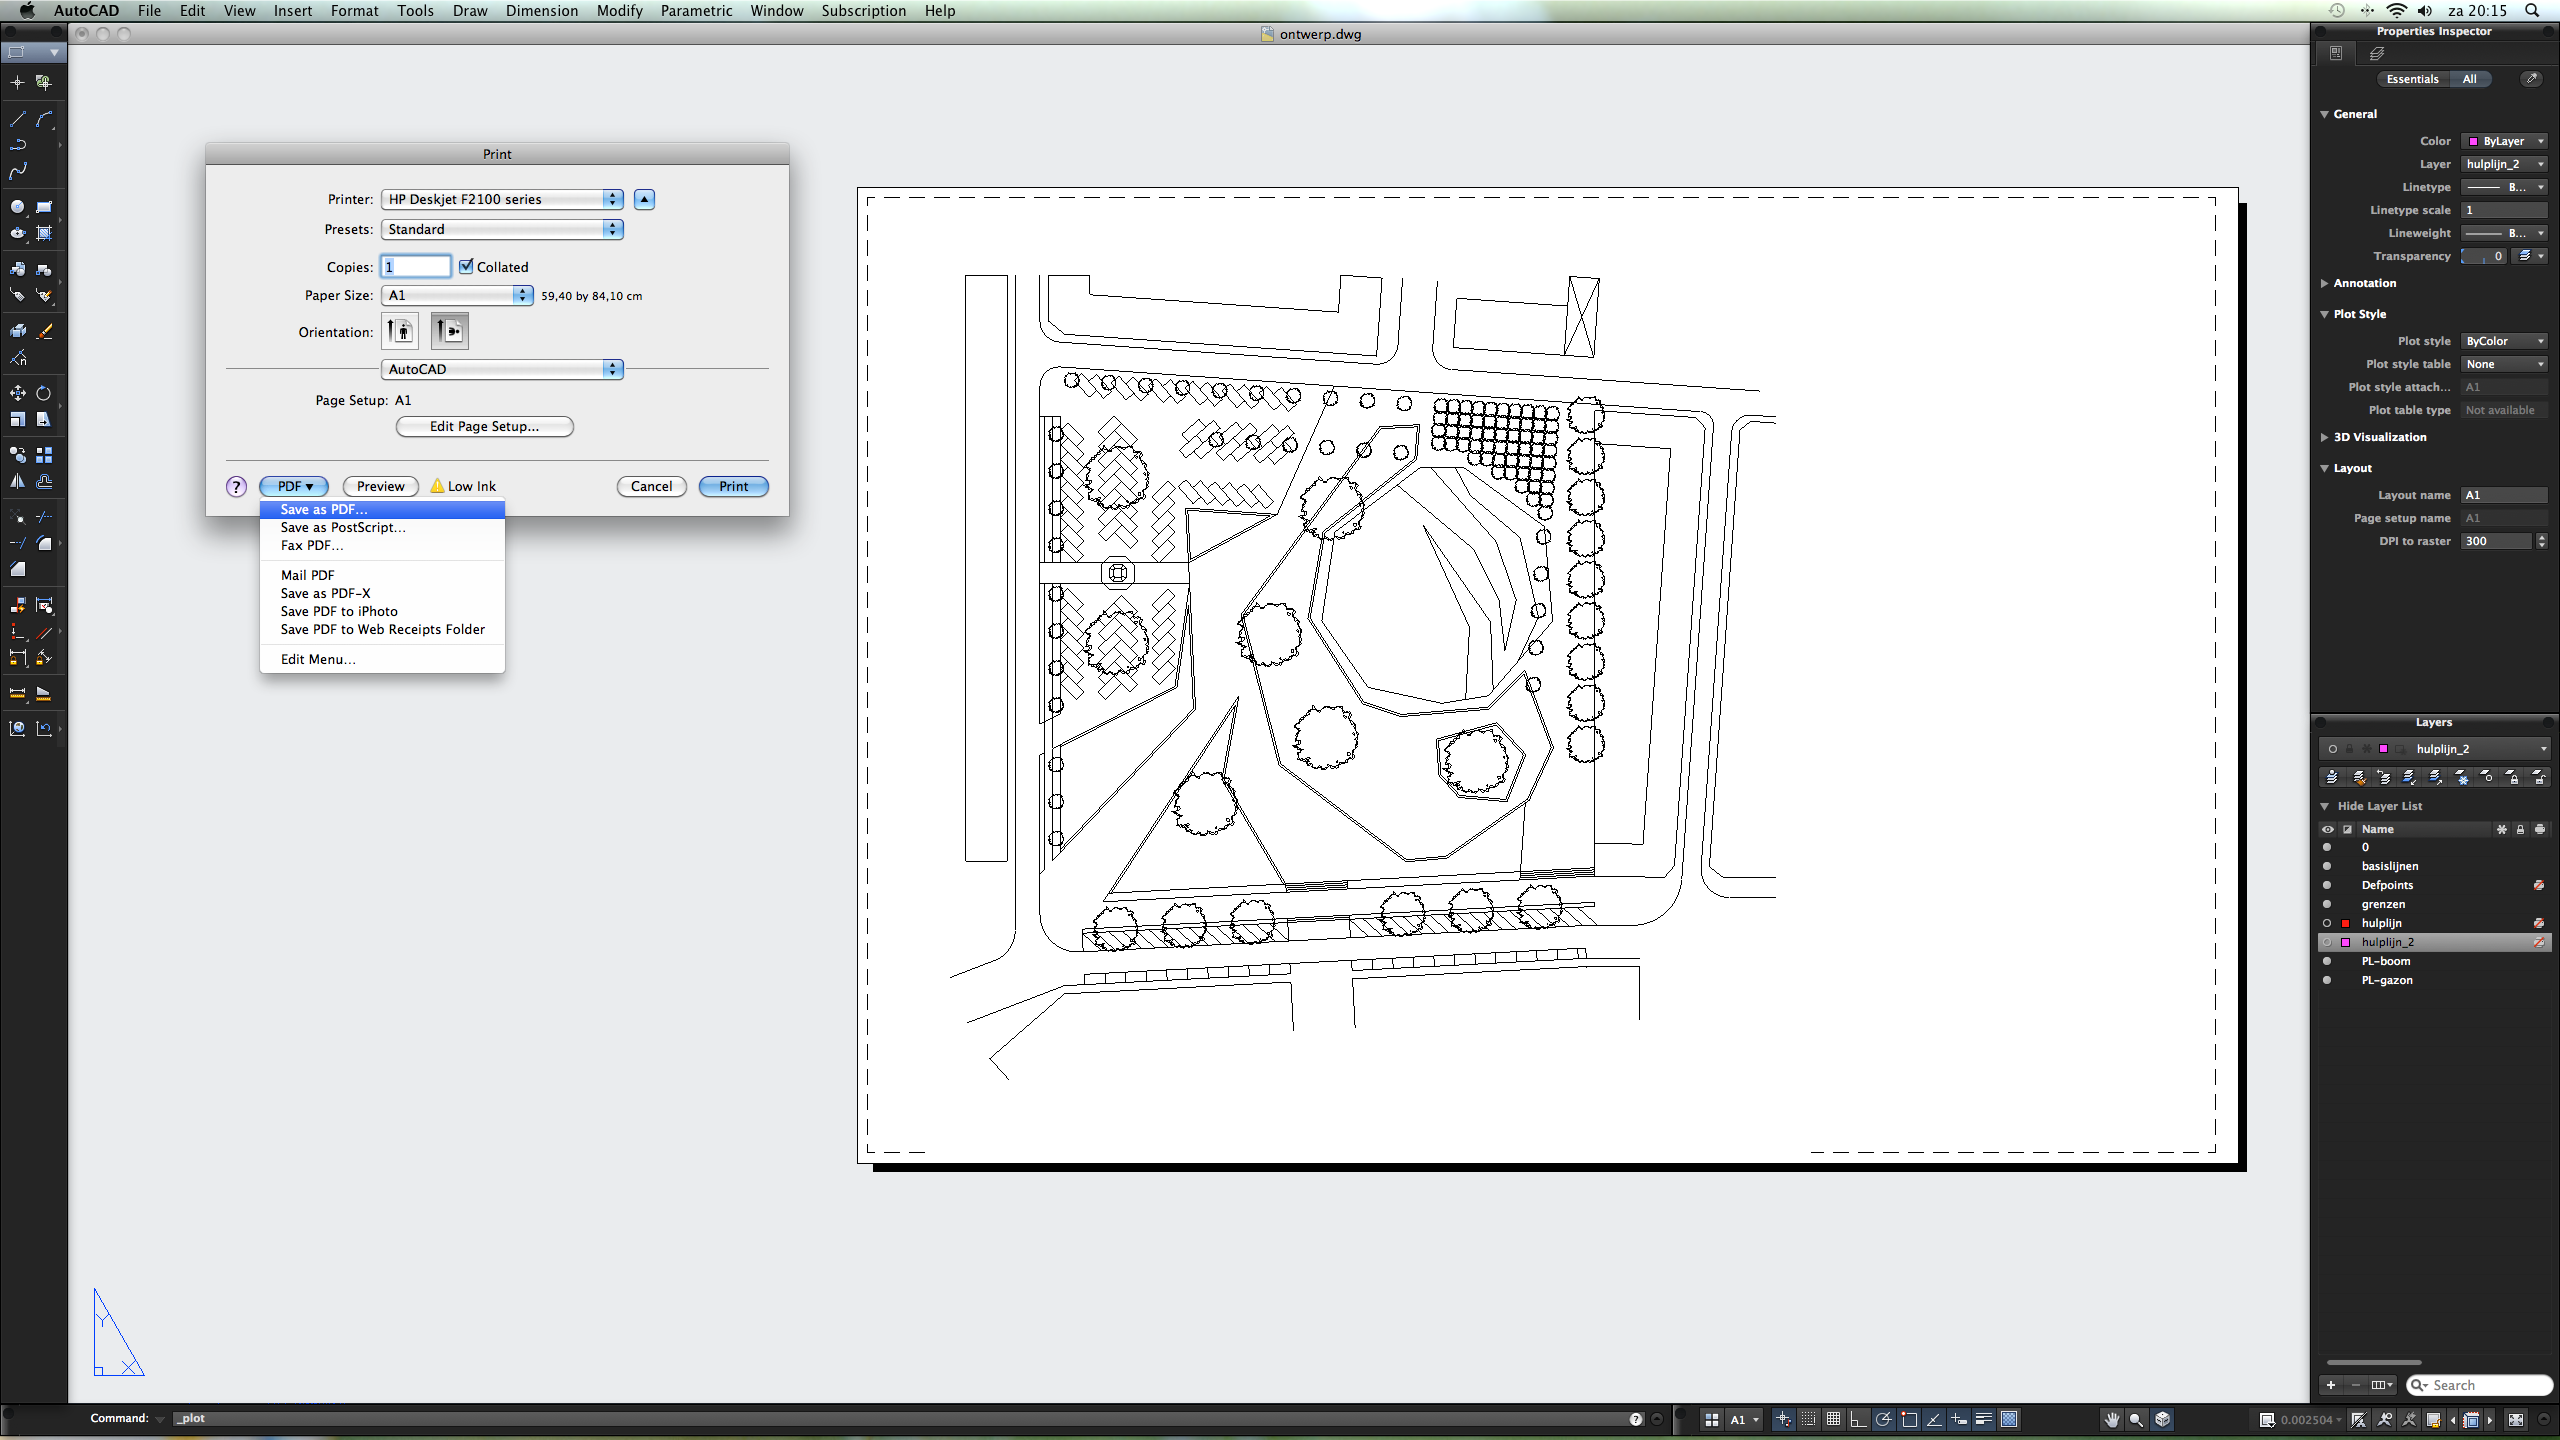 Drawing Smooth Lines In Autocad : Solved no smooth lines please help autodesk community autocad